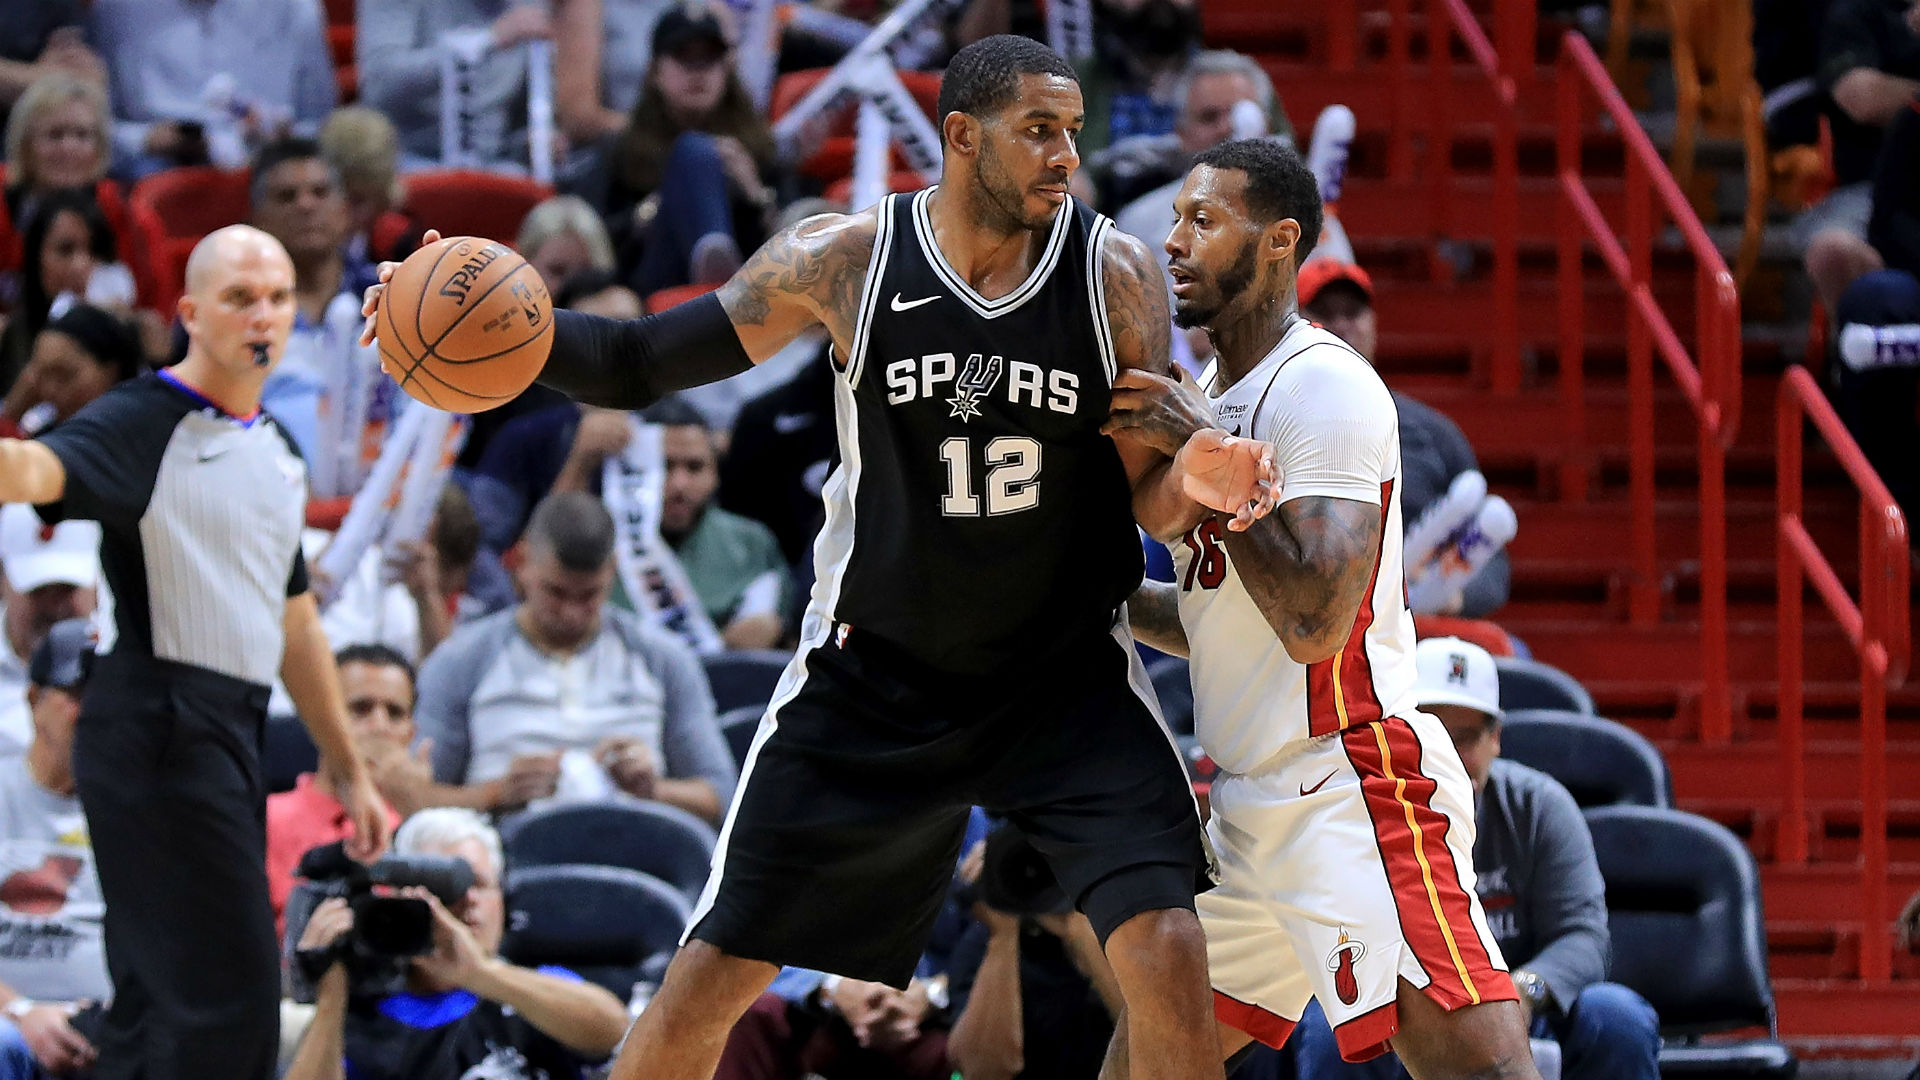 lamarcus-aldridge-james-johnson-ftr-103017.jpg